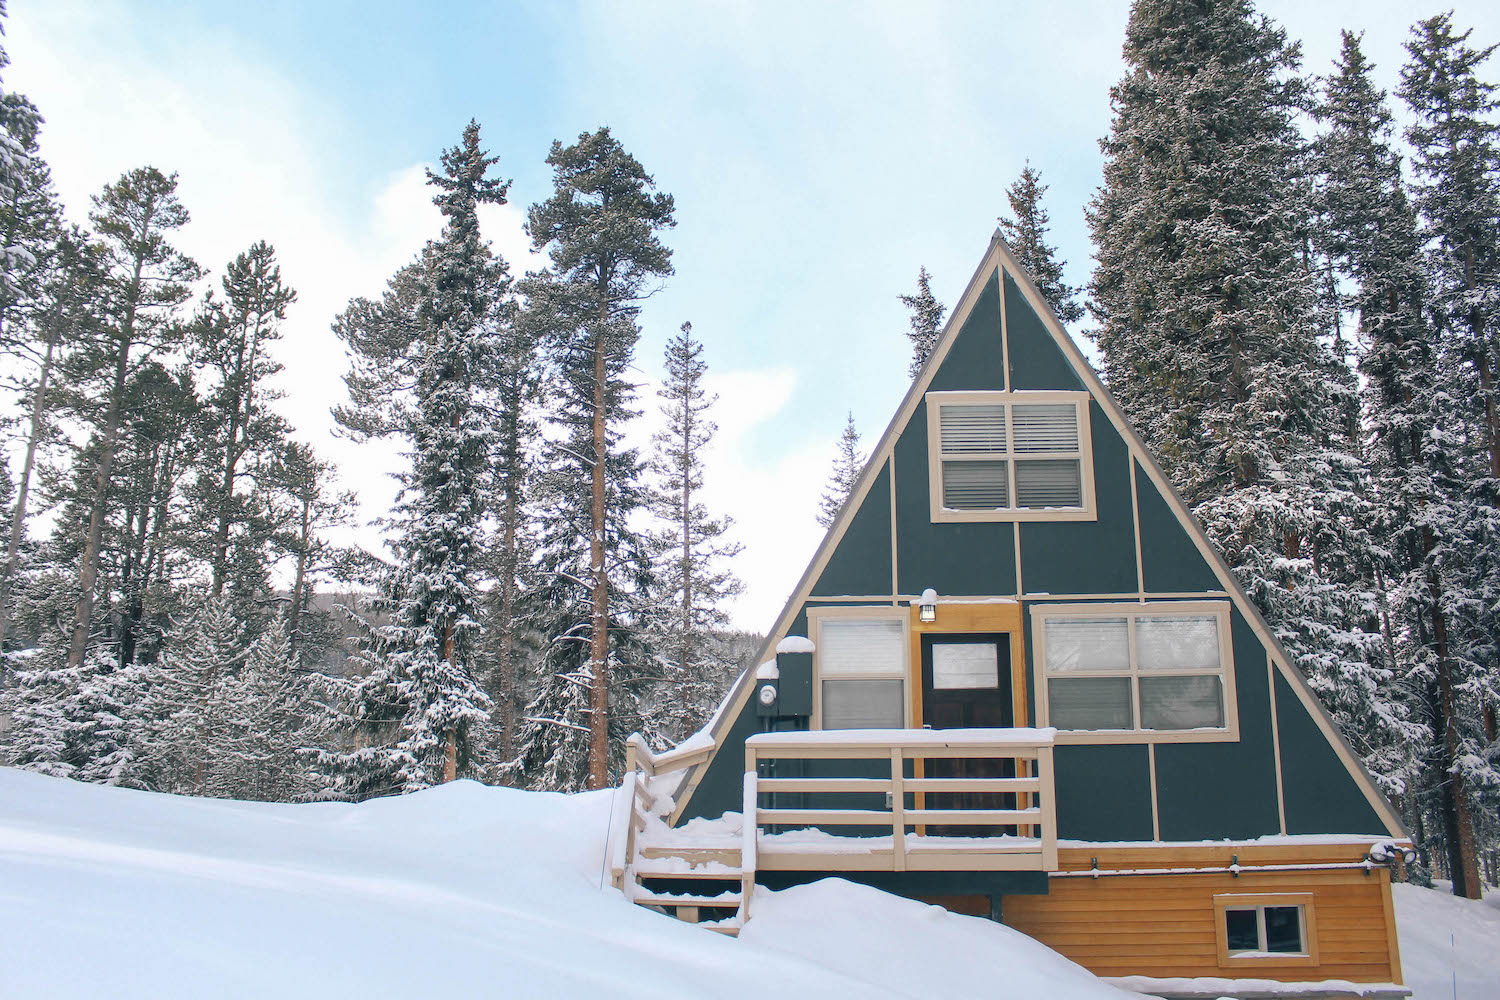 breckenridge-colorado-airbnb-cabin-rental-resized